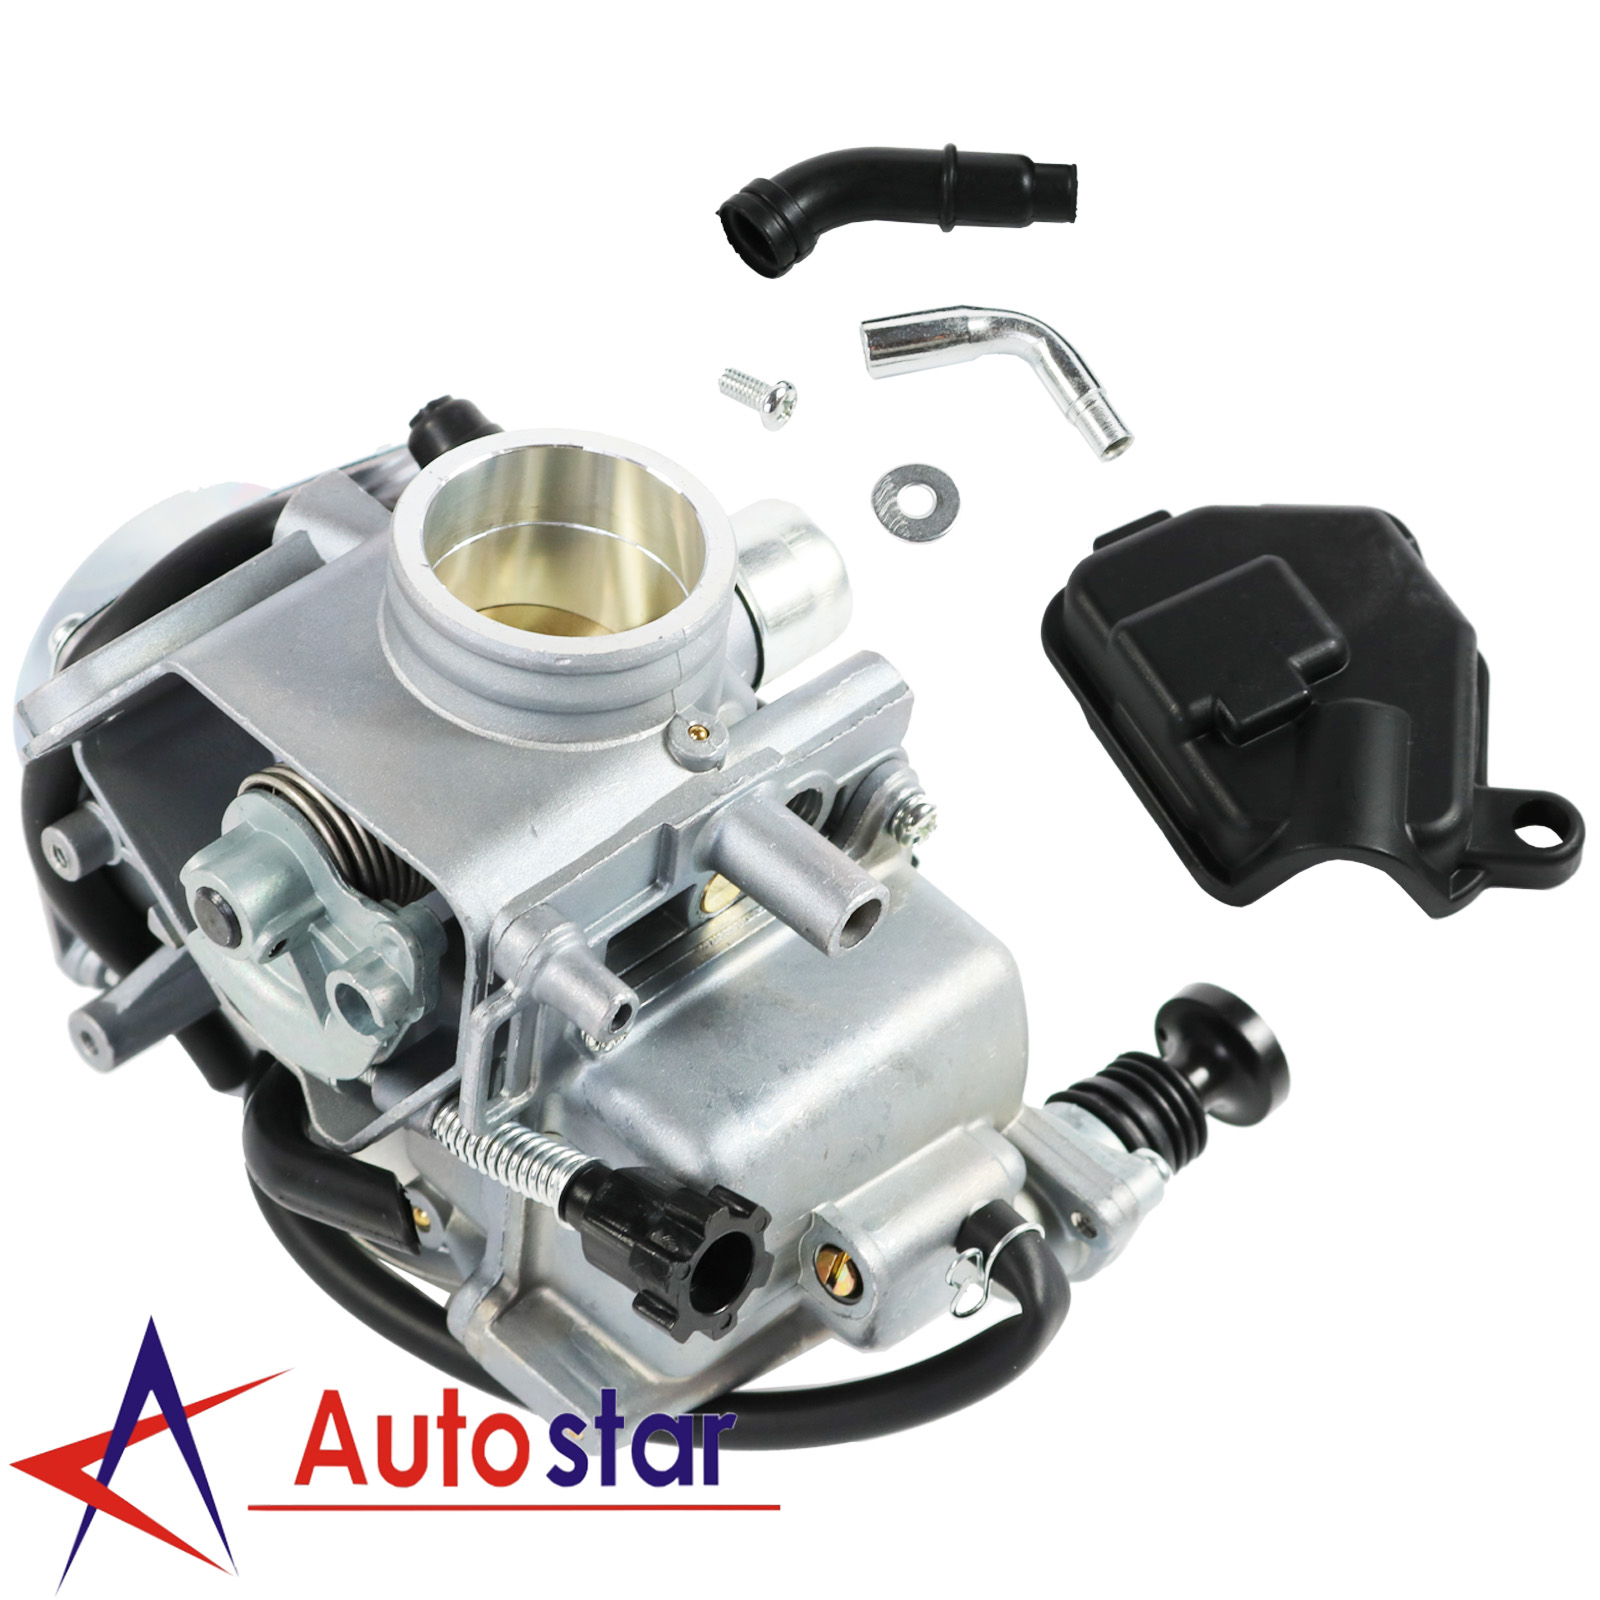 ATV Carburetor For HONDA TRX350 350 RANCHER 350ES// FE// FMTE// TM Carb 2000-2006